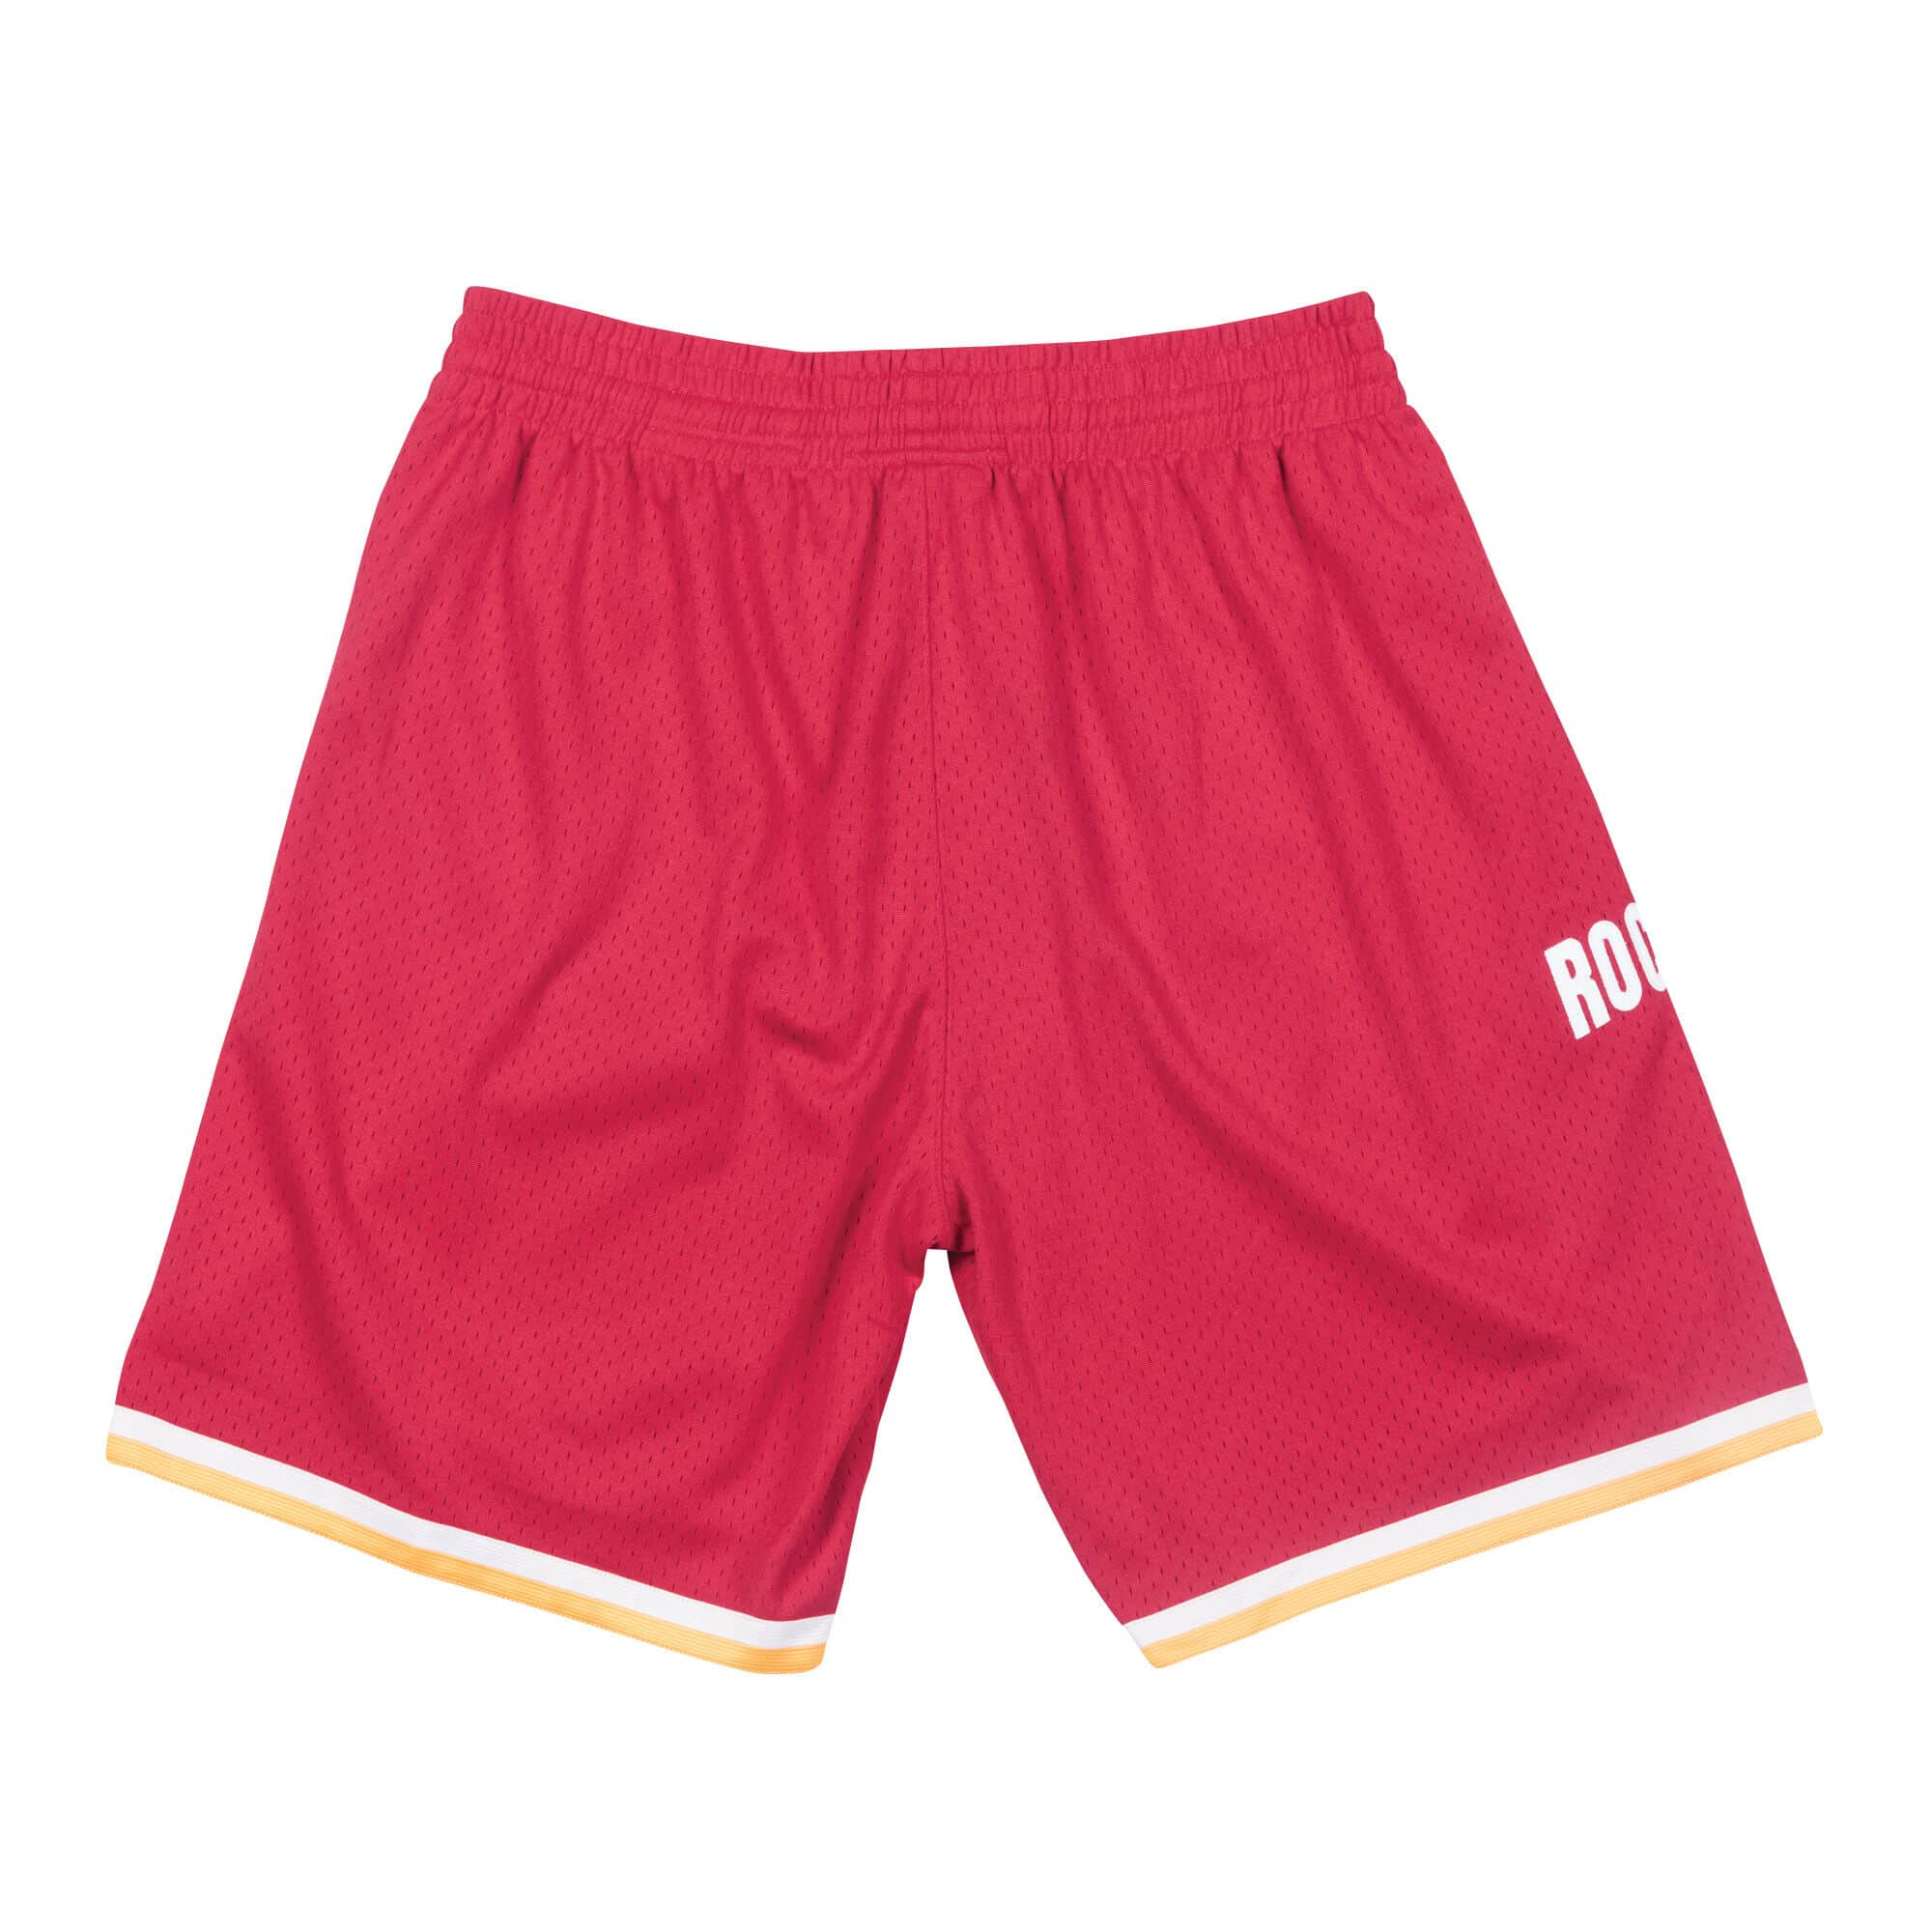 1993-94 Houston Rockets Swingman Short